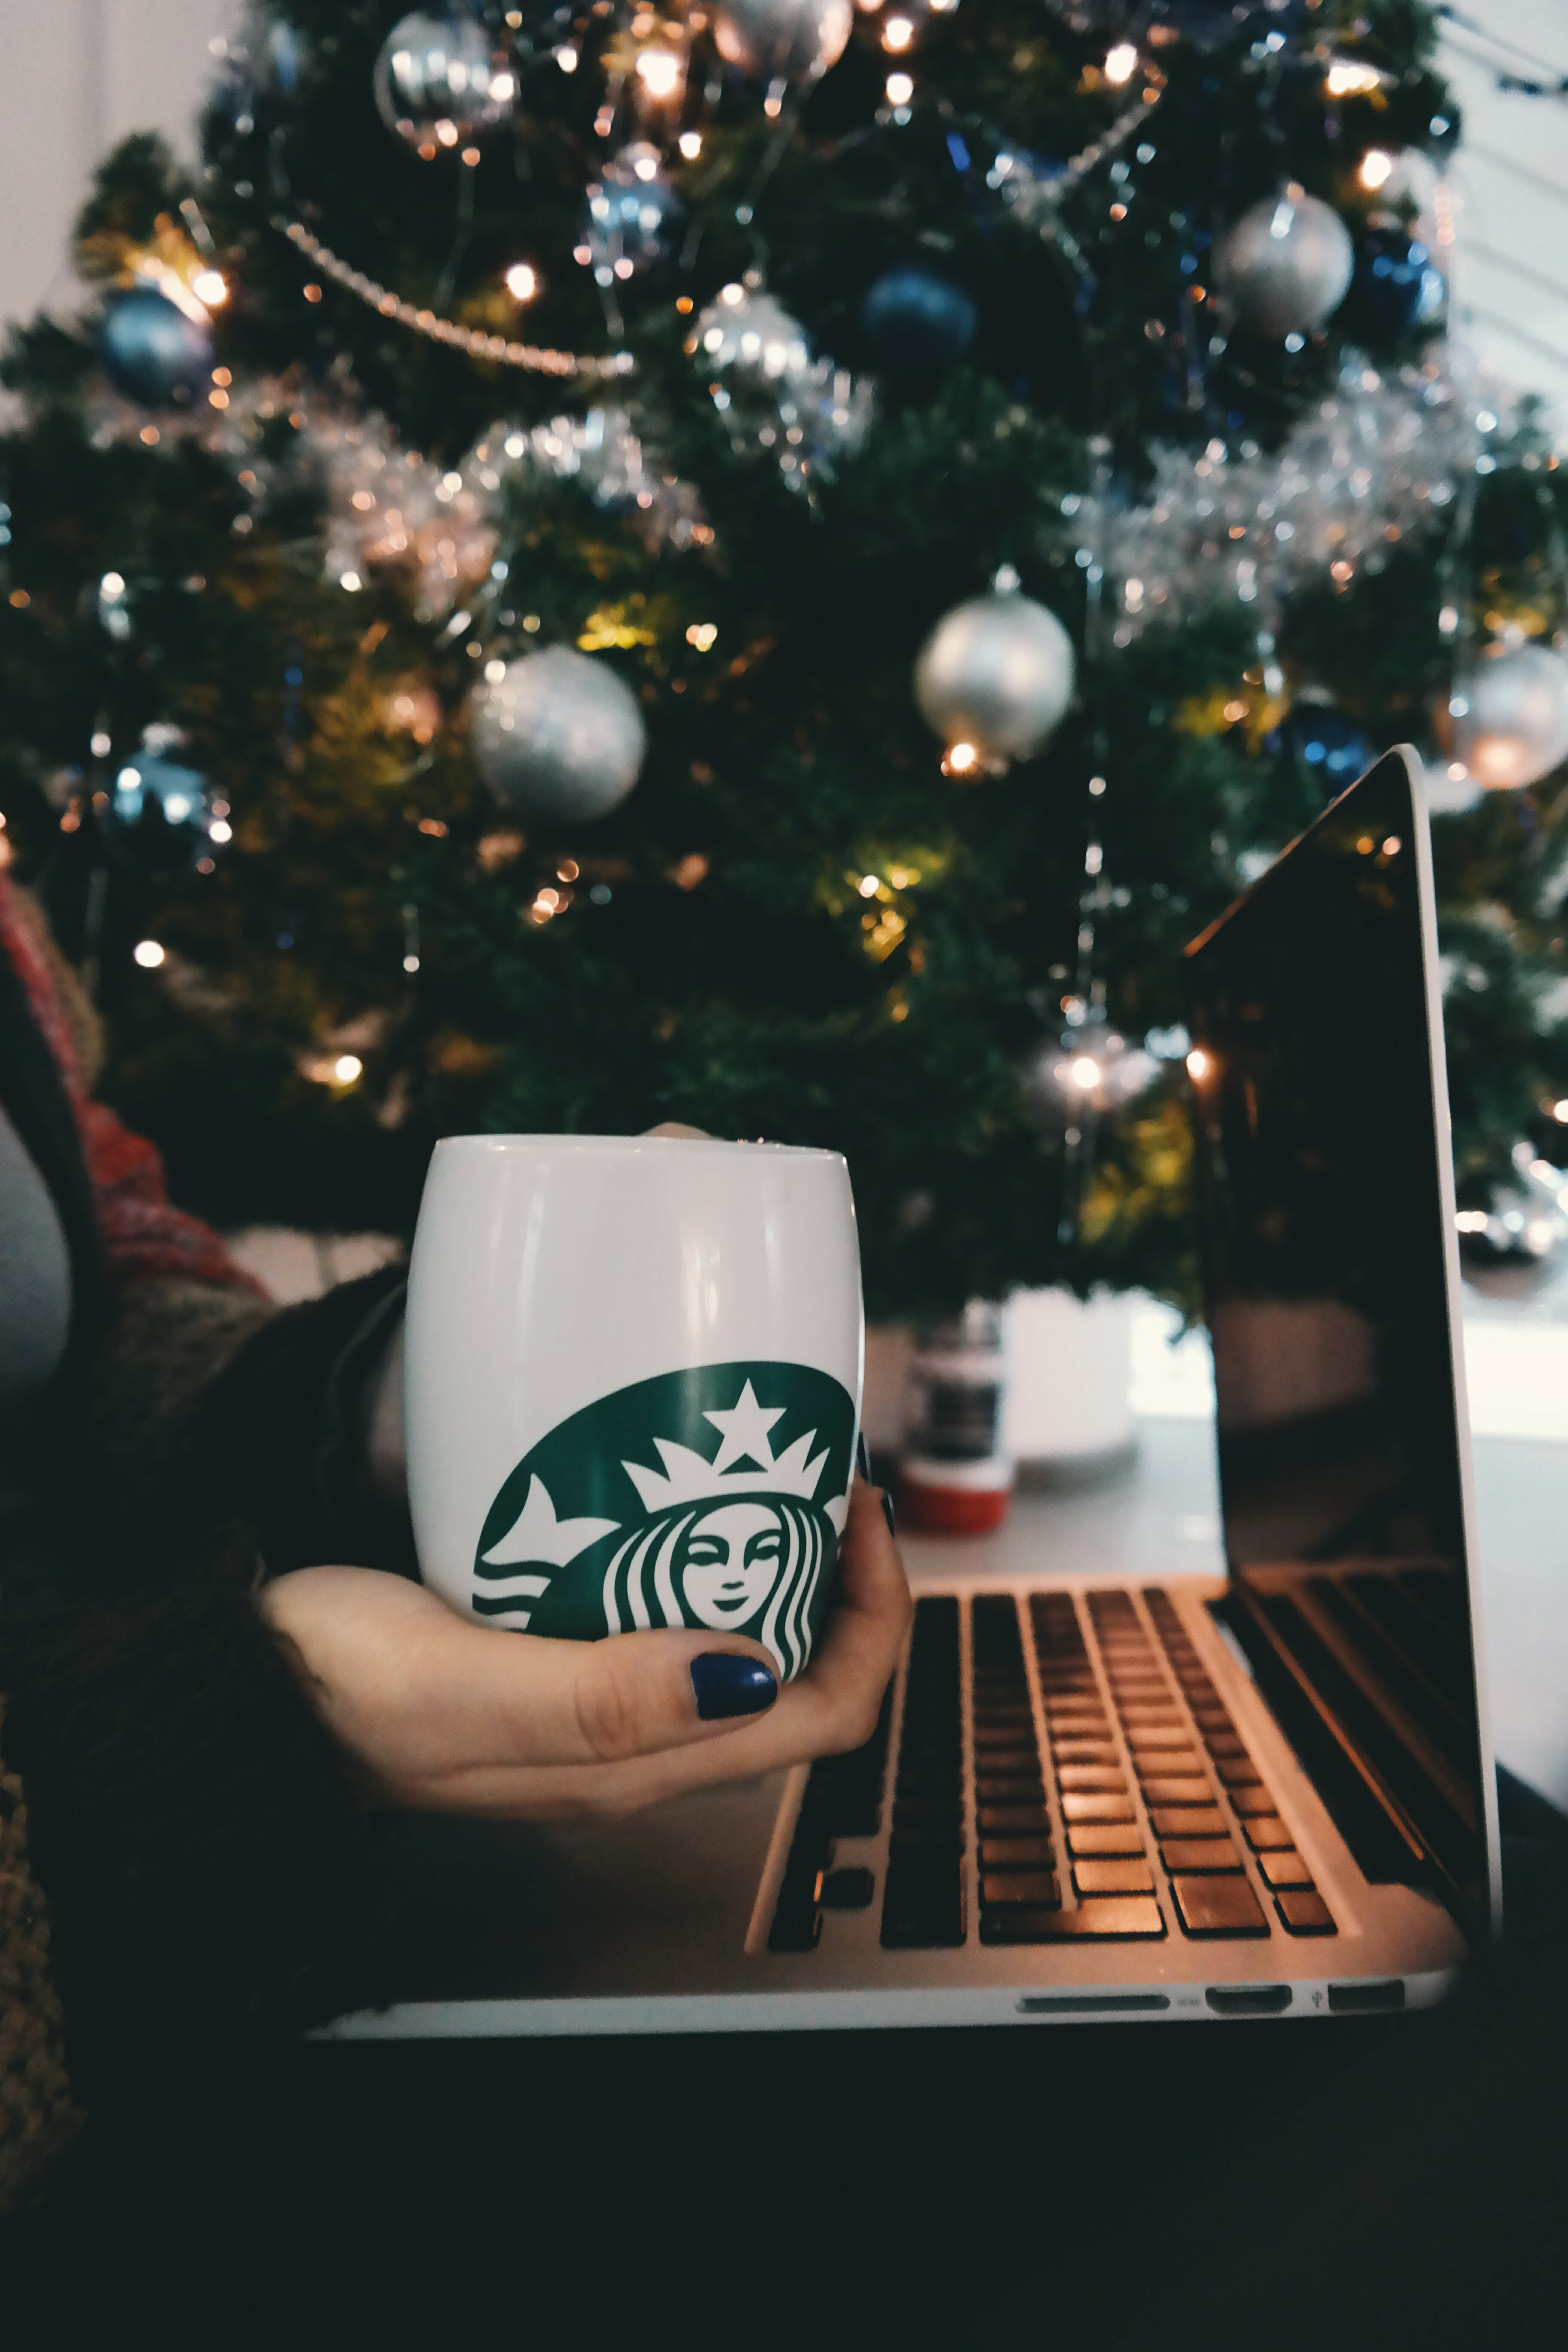 Free stock photo of coffee, hand, mug, laptop